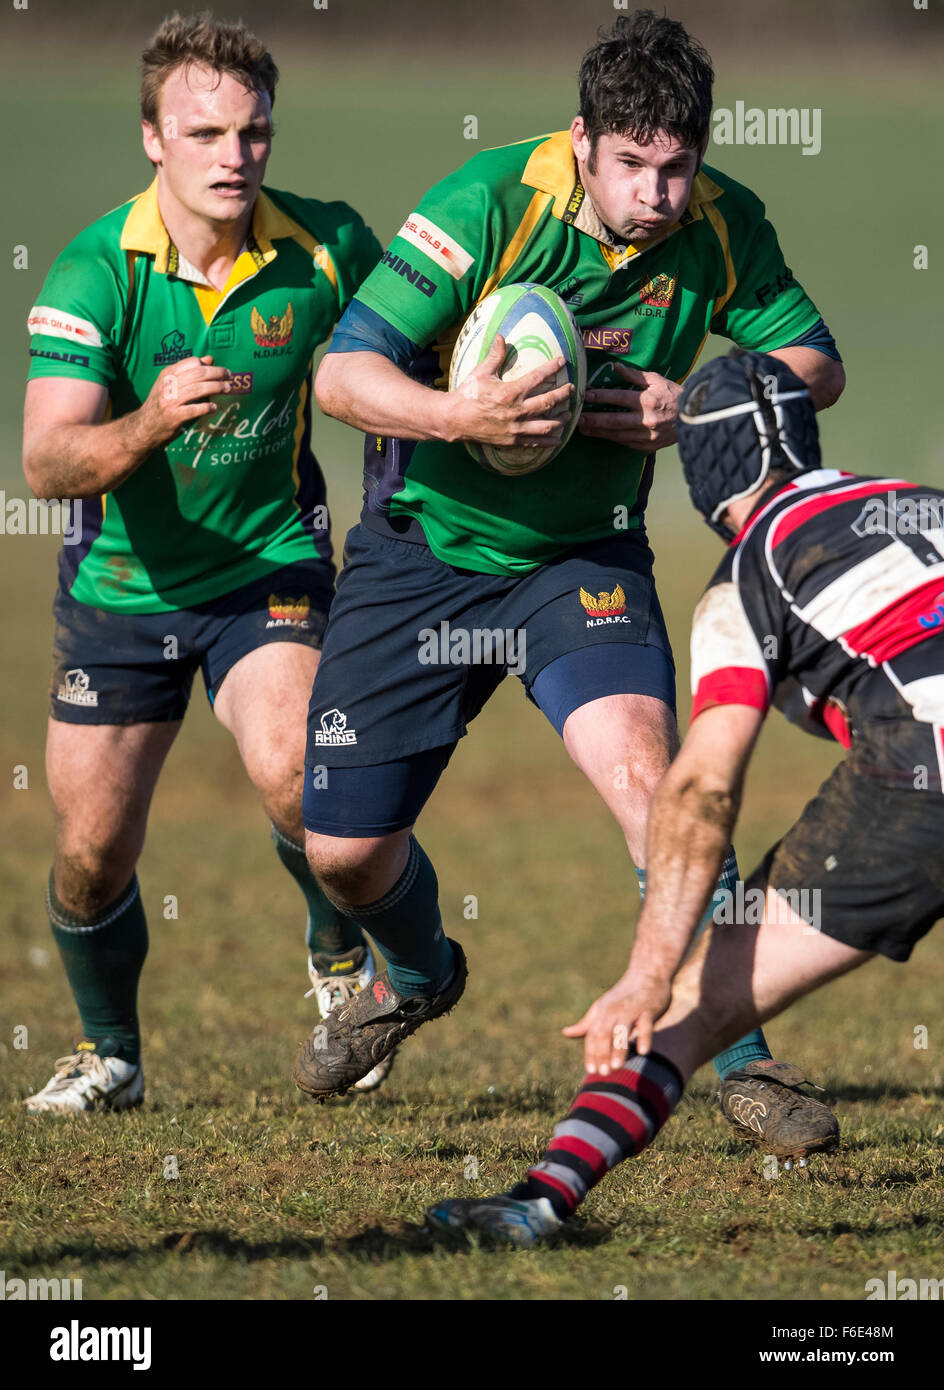 Rugby players in action - Stock Image